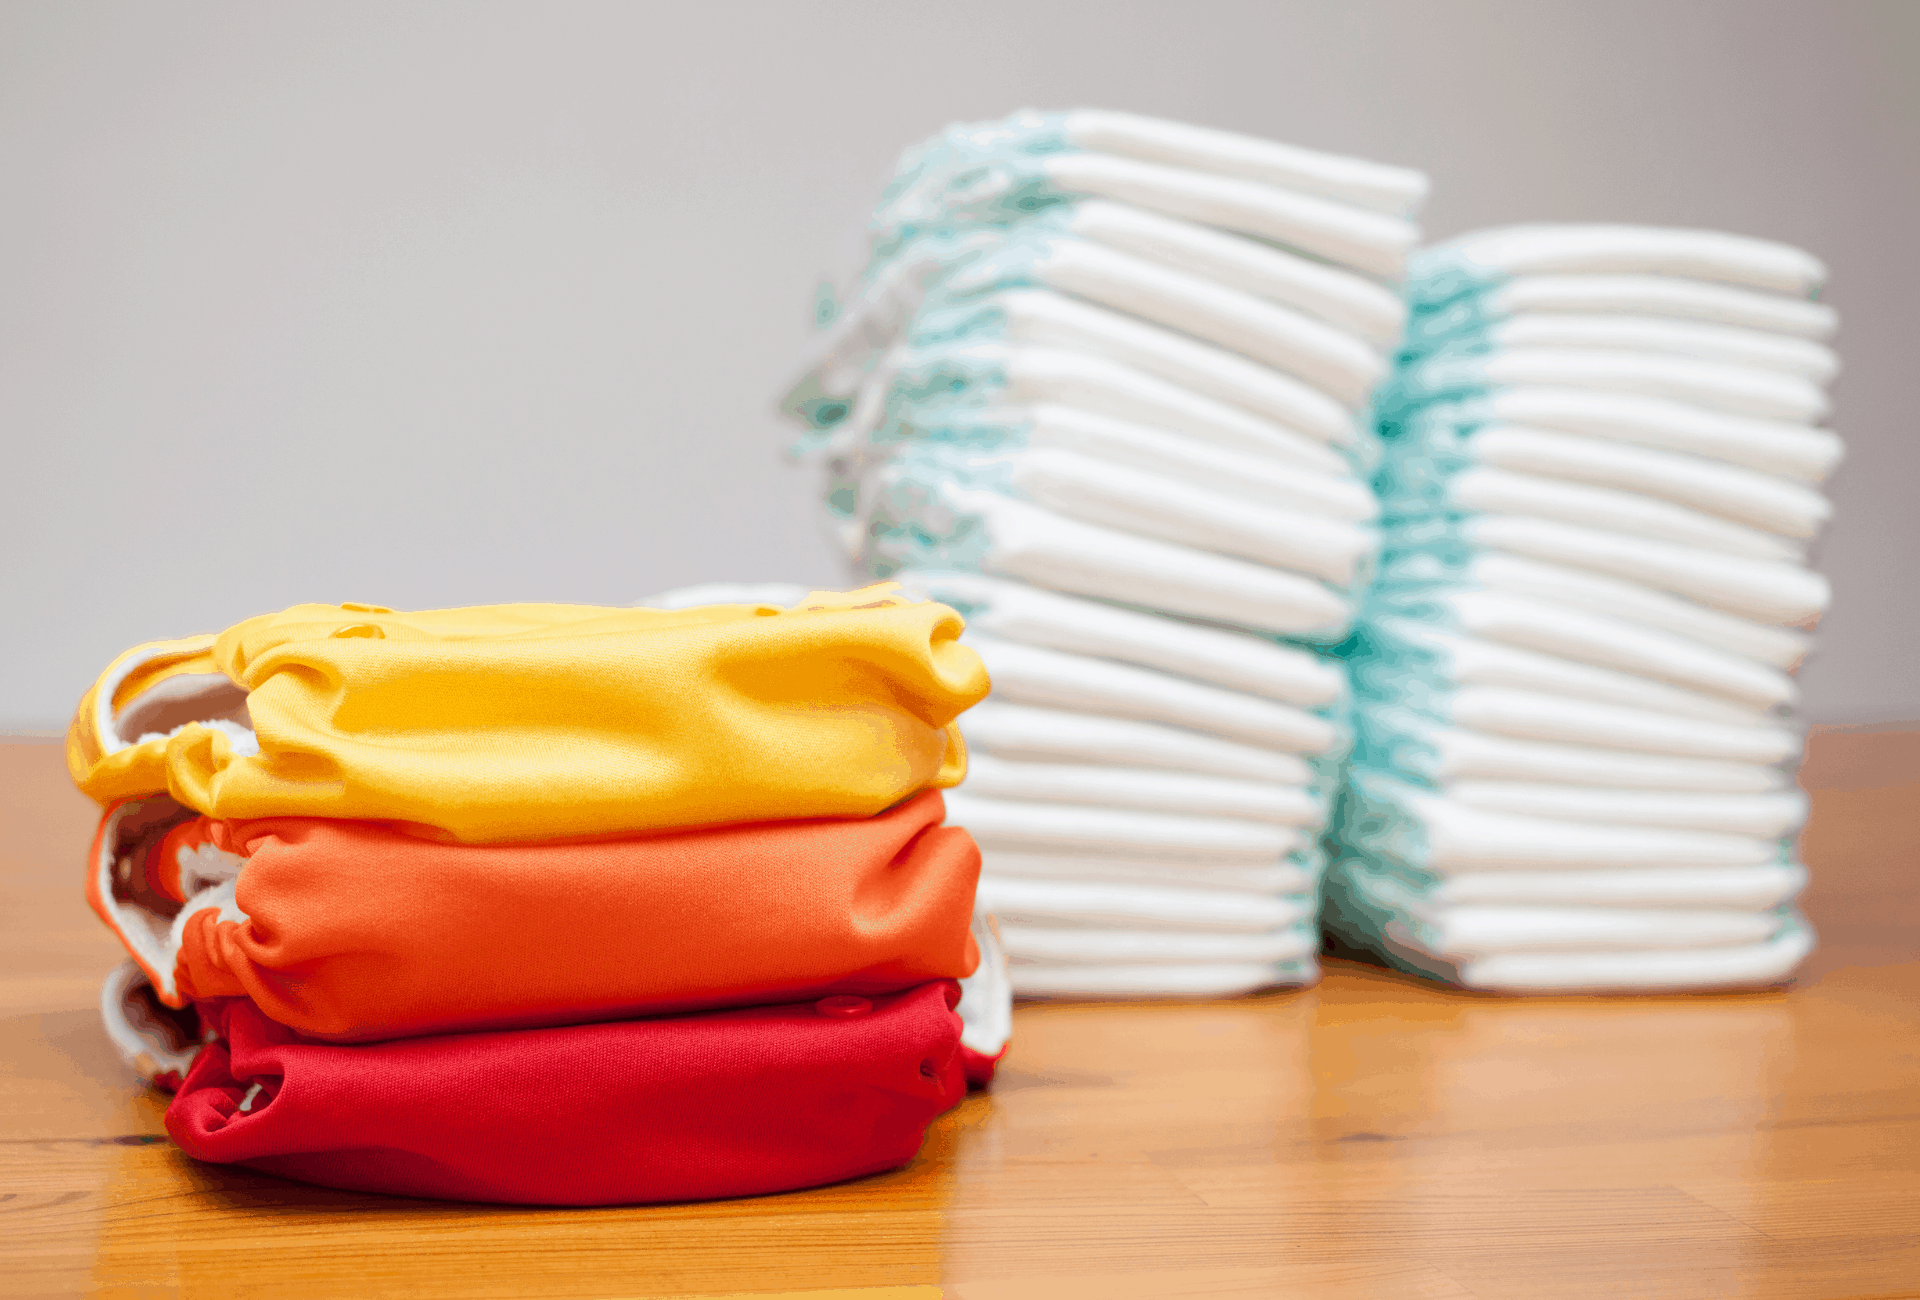 Washable dog diapers vs disposable dog diapers